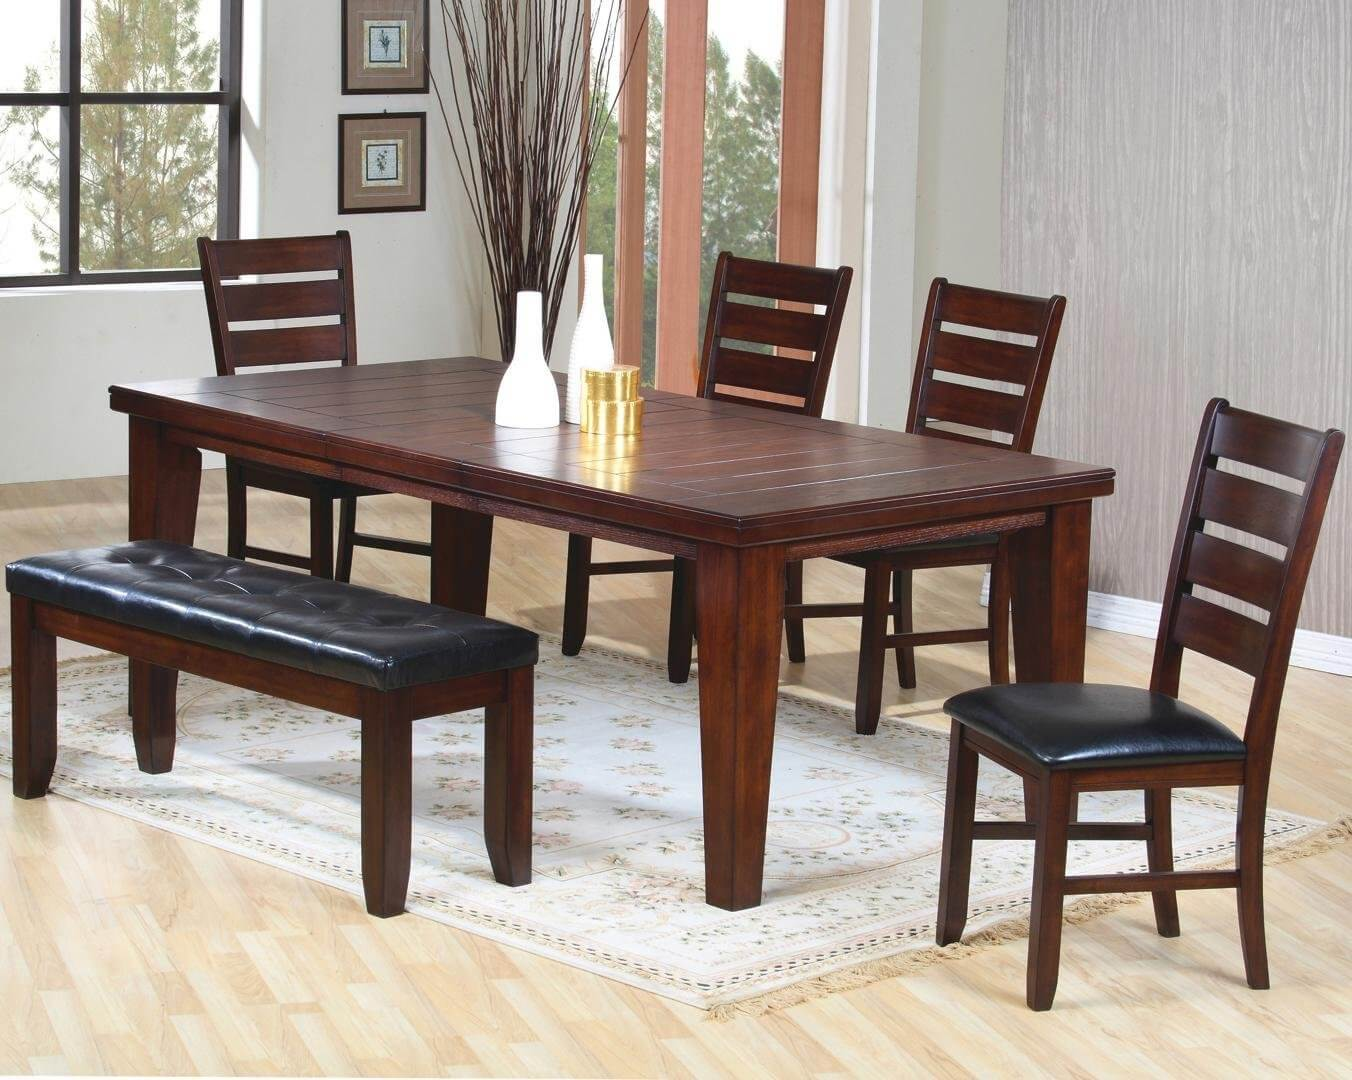 Solid wood six piece dining set with cushioned bench. The finish is dark oak wood & 26 Dining Room Sets (Big and Small) with Bench Seating (2018)